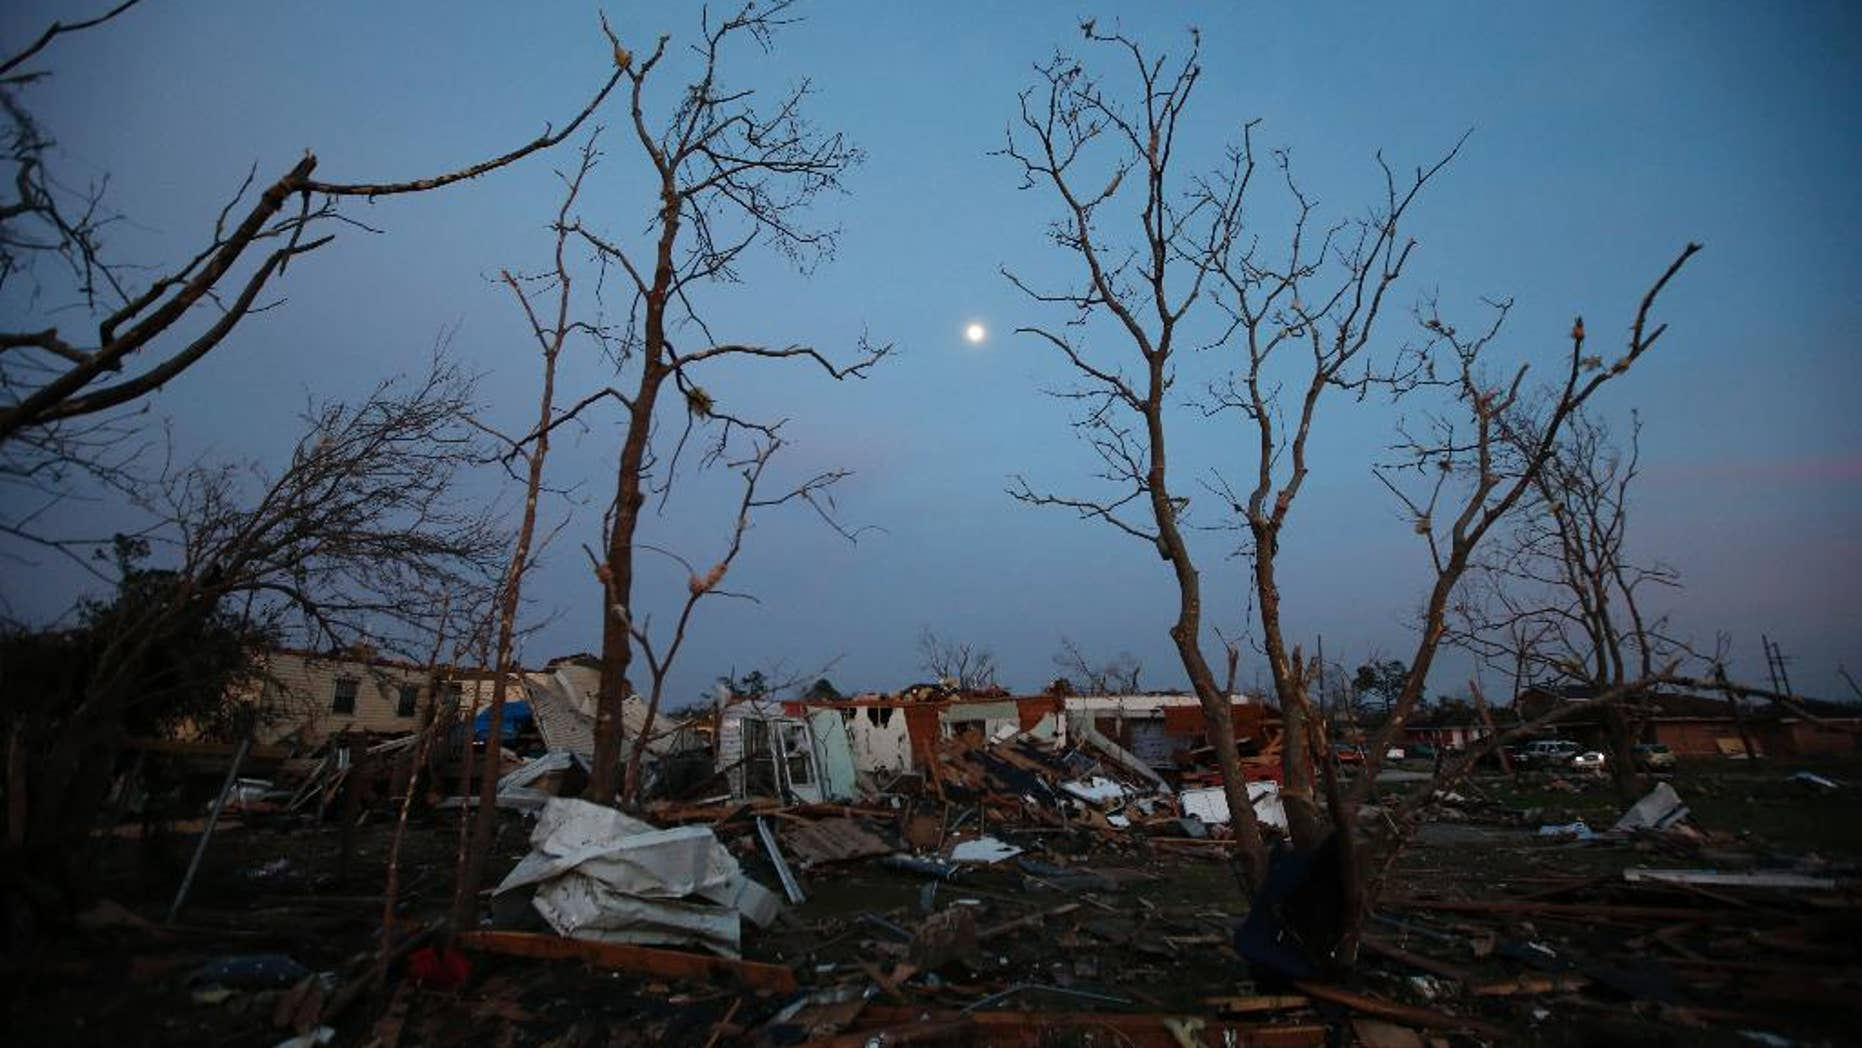 FILE - In this Feb. 8, 2017 file photo, the moon rises over a destroyed neighborhood in the aftermath of a tornado that tore through the New Orleans East section of New Orleans.  Forecasters are warning of severe storms as a powerful system moves across the central United States, the start of what could a turbulent stretch of spring weather over the next few days. The bull's-eye for some of the most fearsome weather _ including possible tornadoes, s over parts of Louisiana, Arkansas and east Texas on Friday, March 24 forecasters said. (AP Photo/Gerald Herbert)